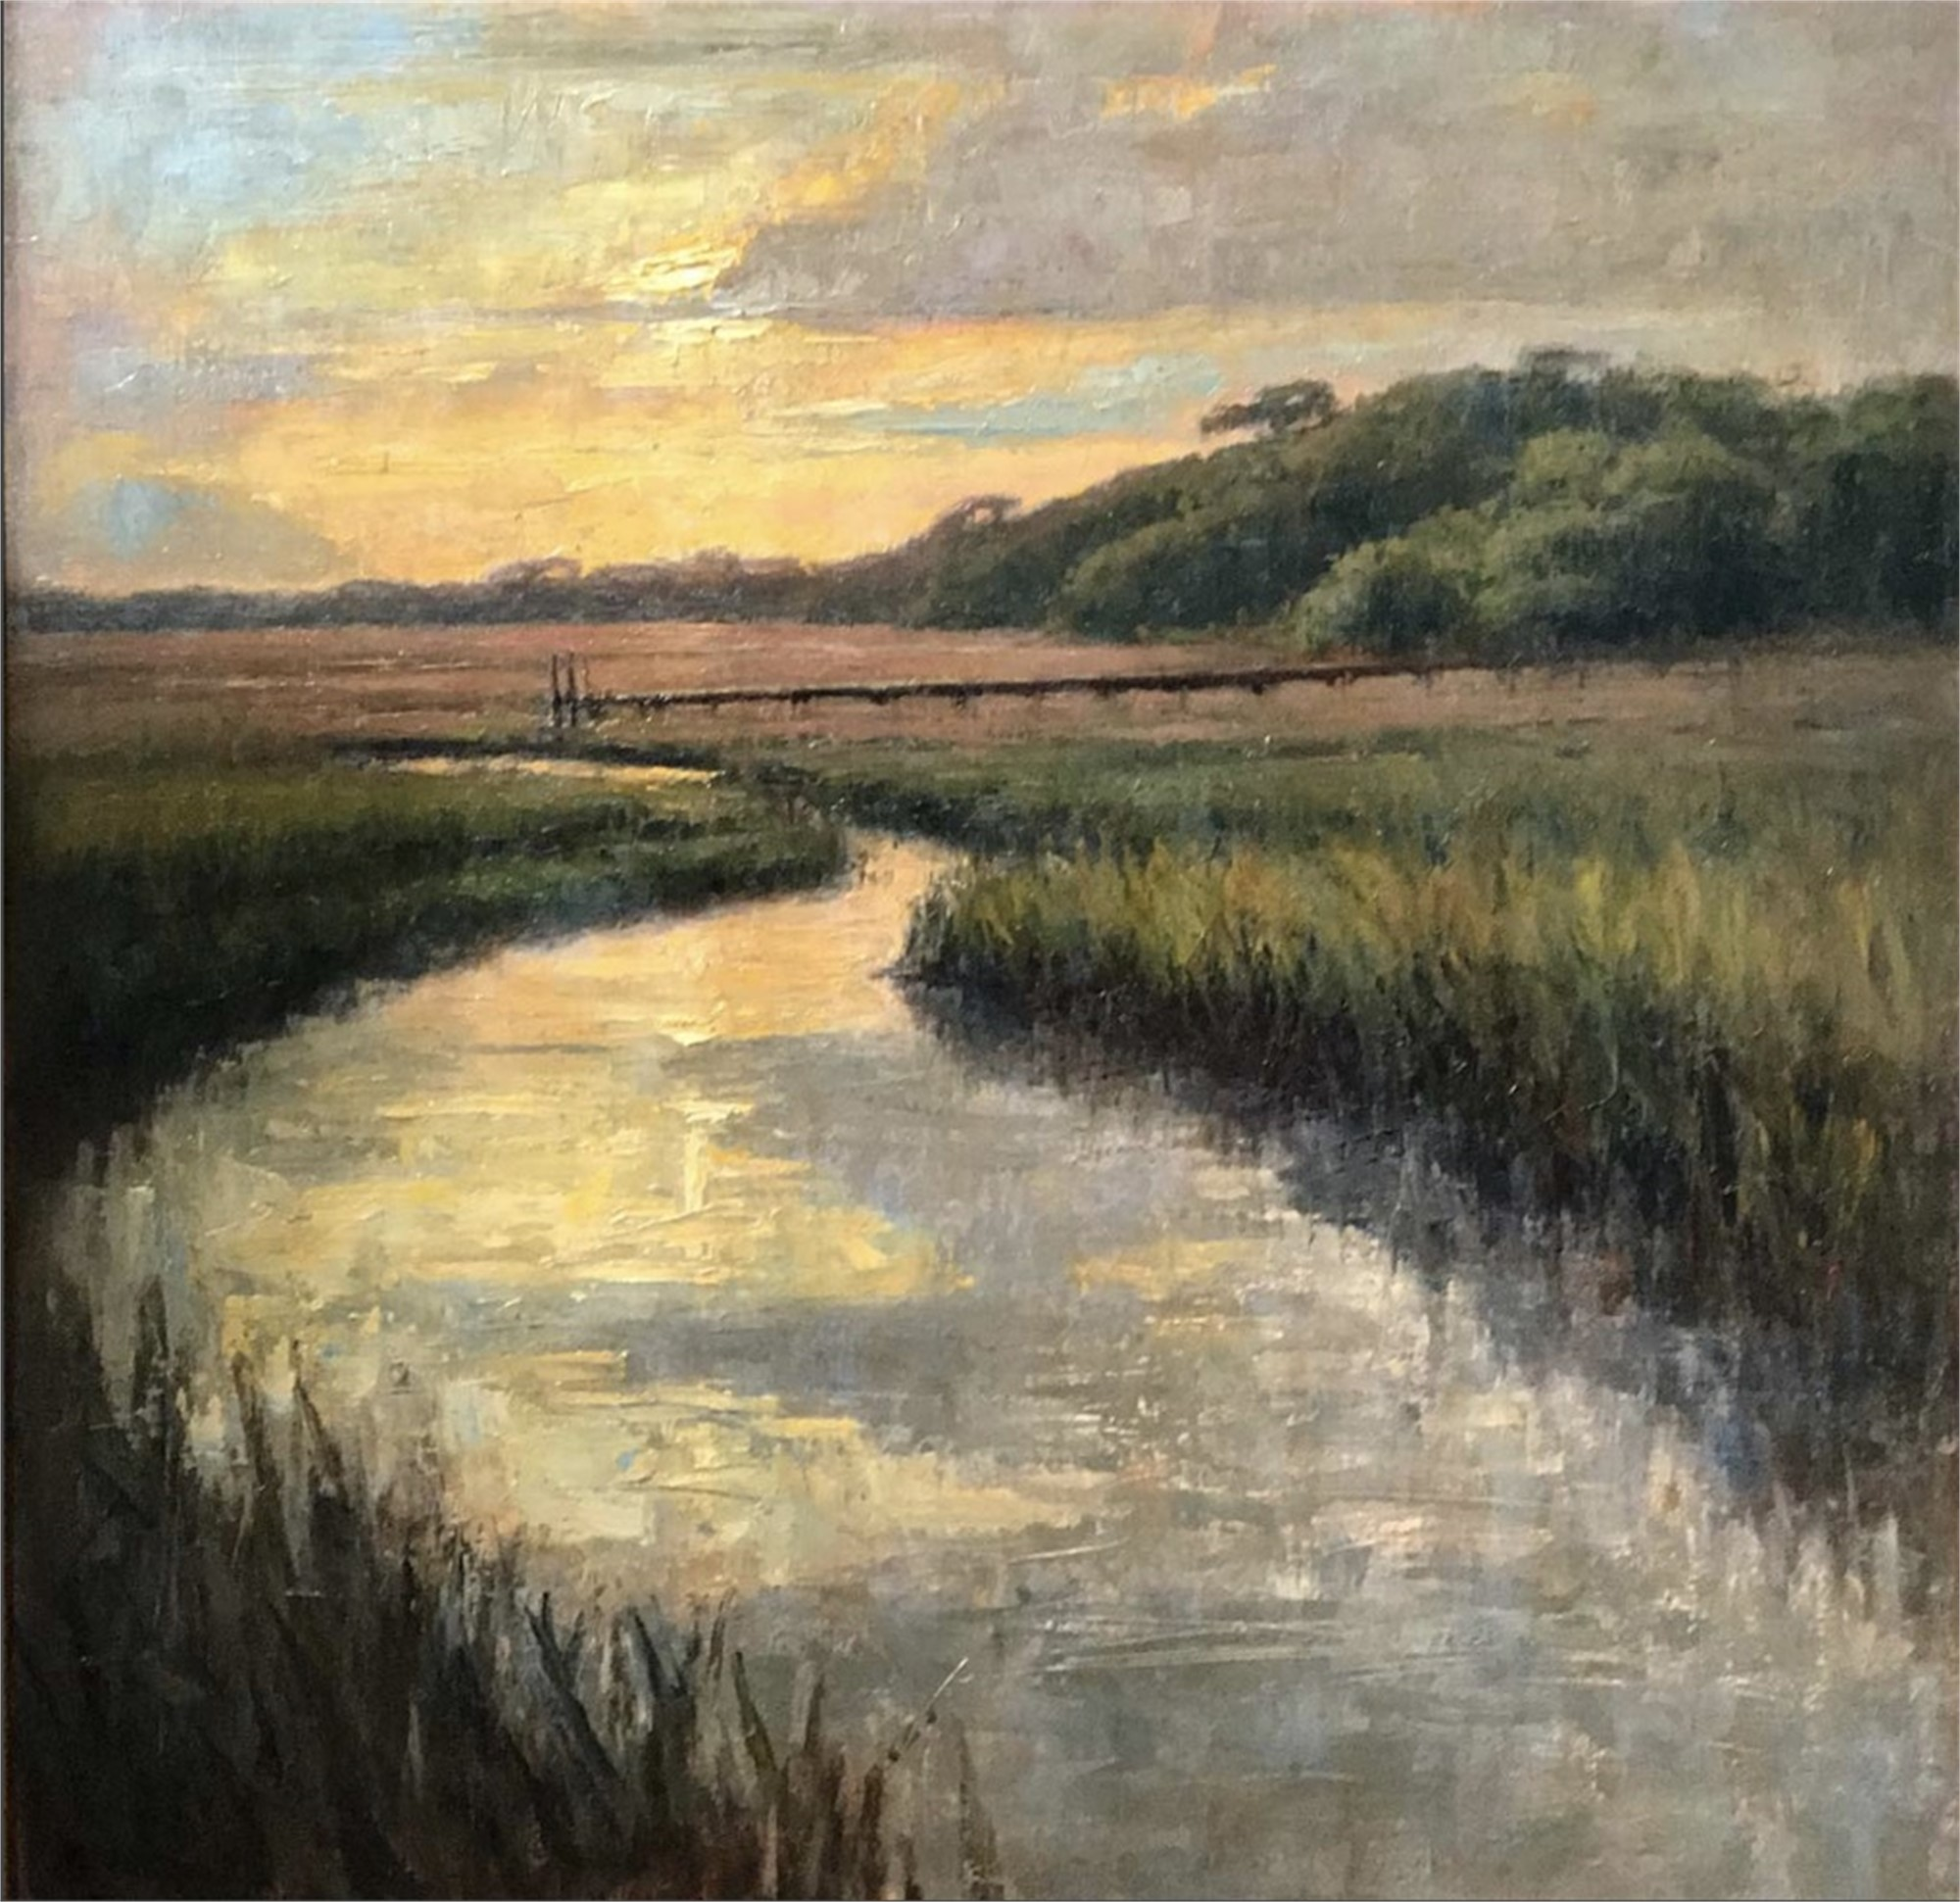 Marsh at Sunset by Brett Weaver